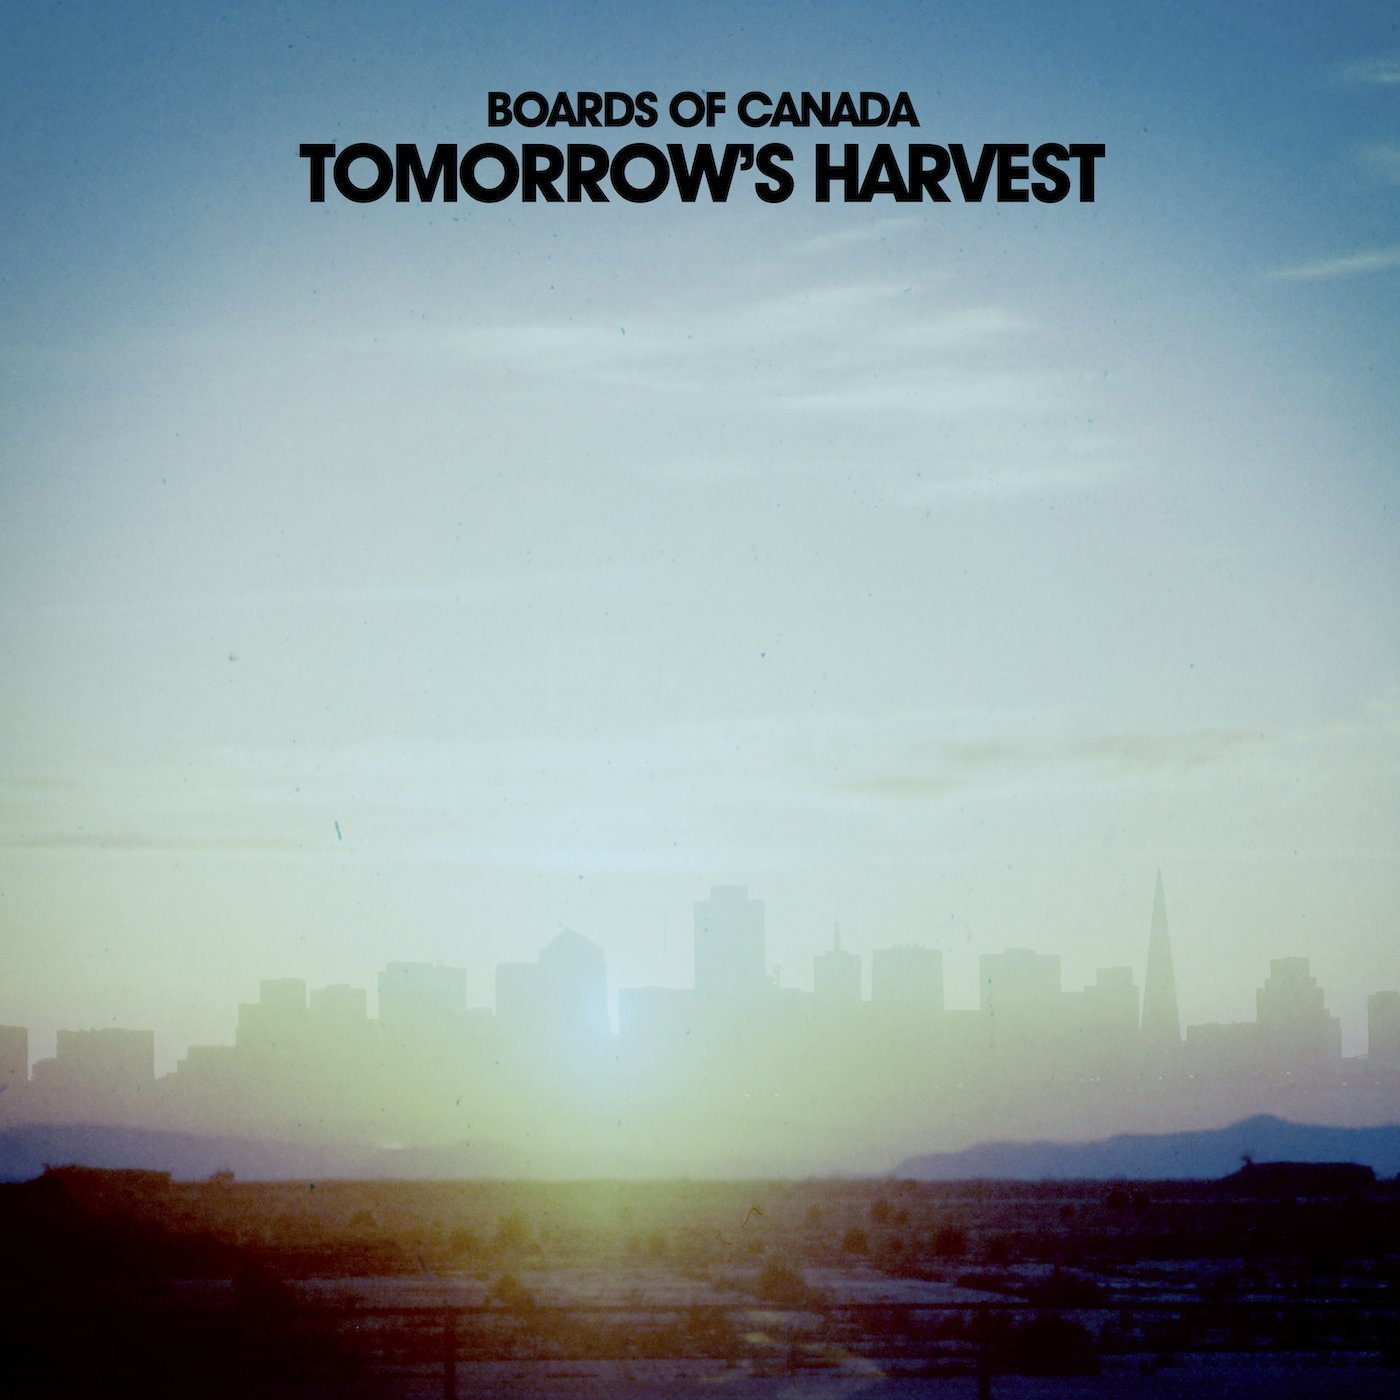 boards-of-canada-tomorrows-harvest-cover